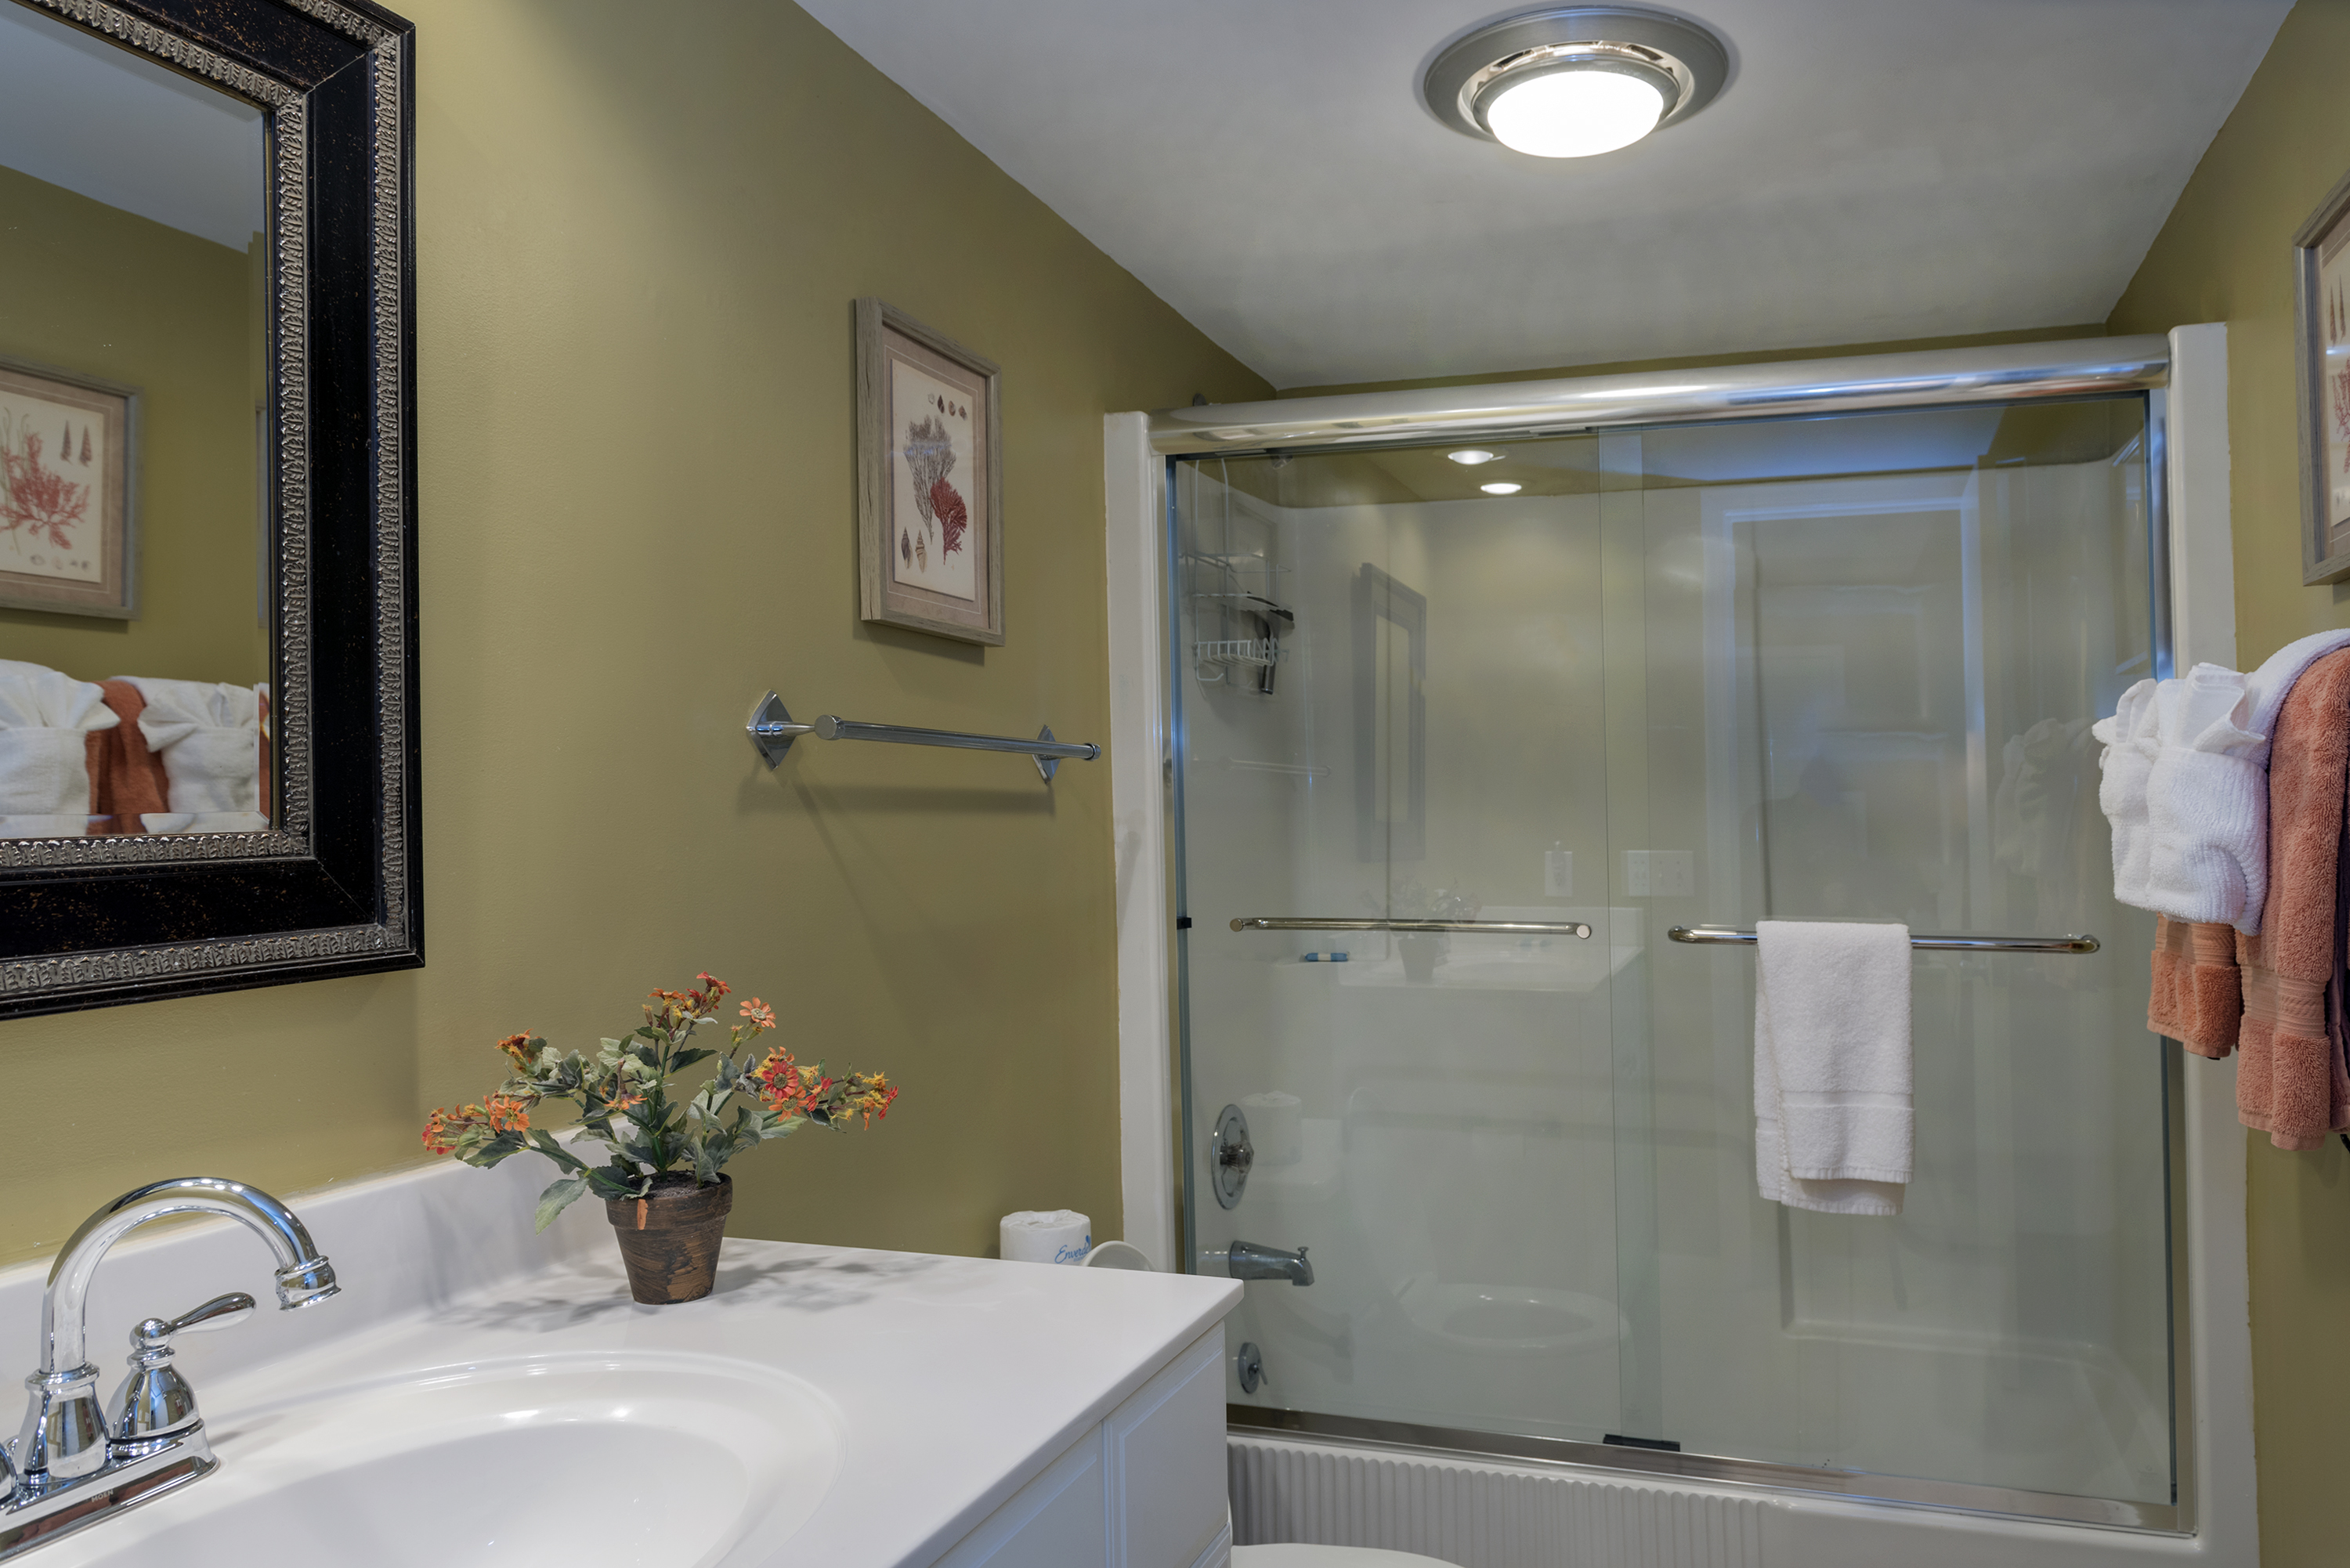 It has a shower/tub with new glass doors.